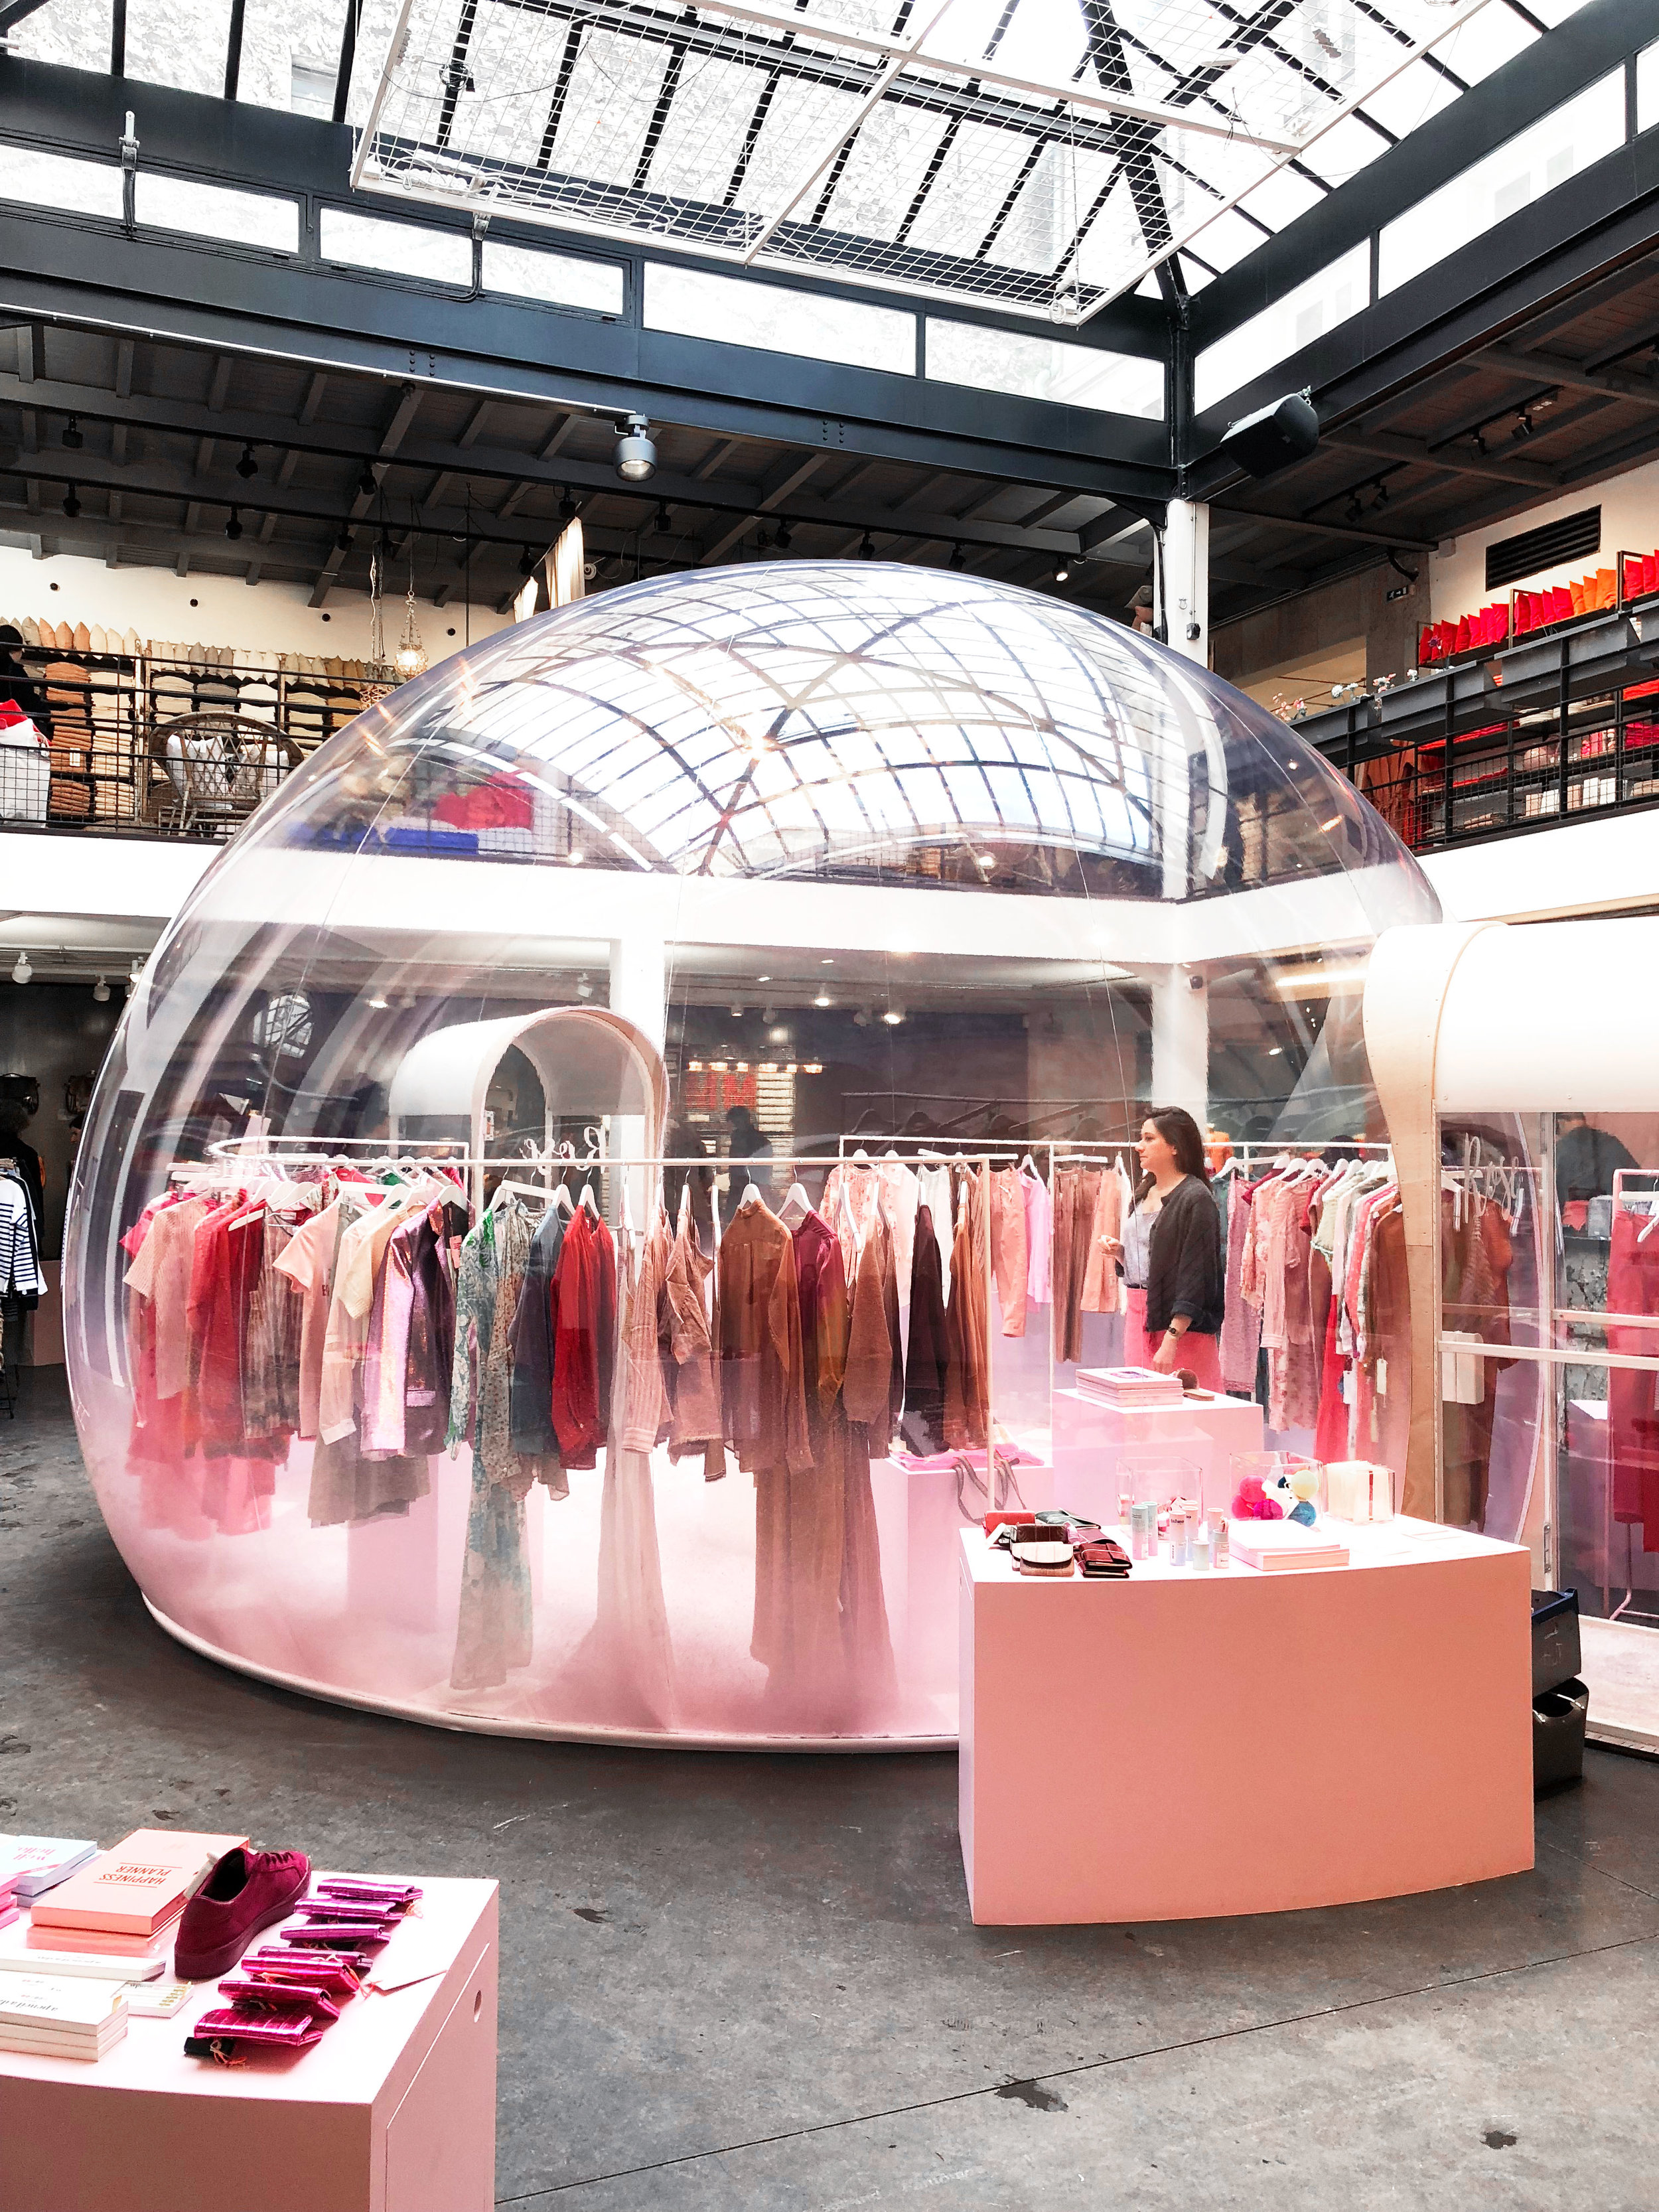 This was one of the cute boutiques in this store - it was in a bubble igloo!